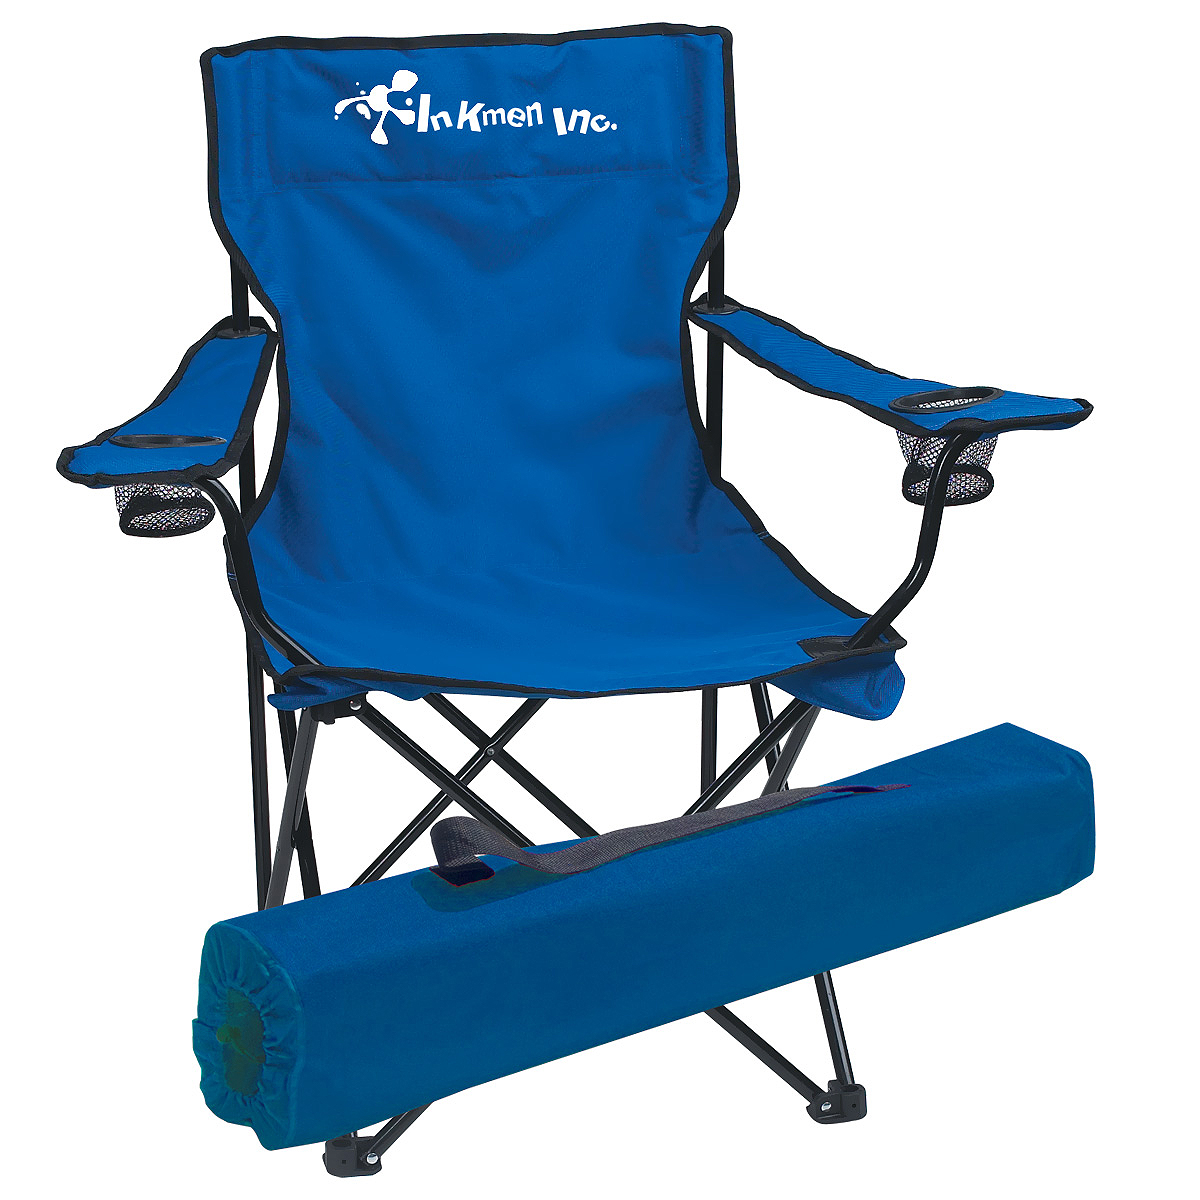 Folding Sleeping Chair Folding Chair With Carrying Bag